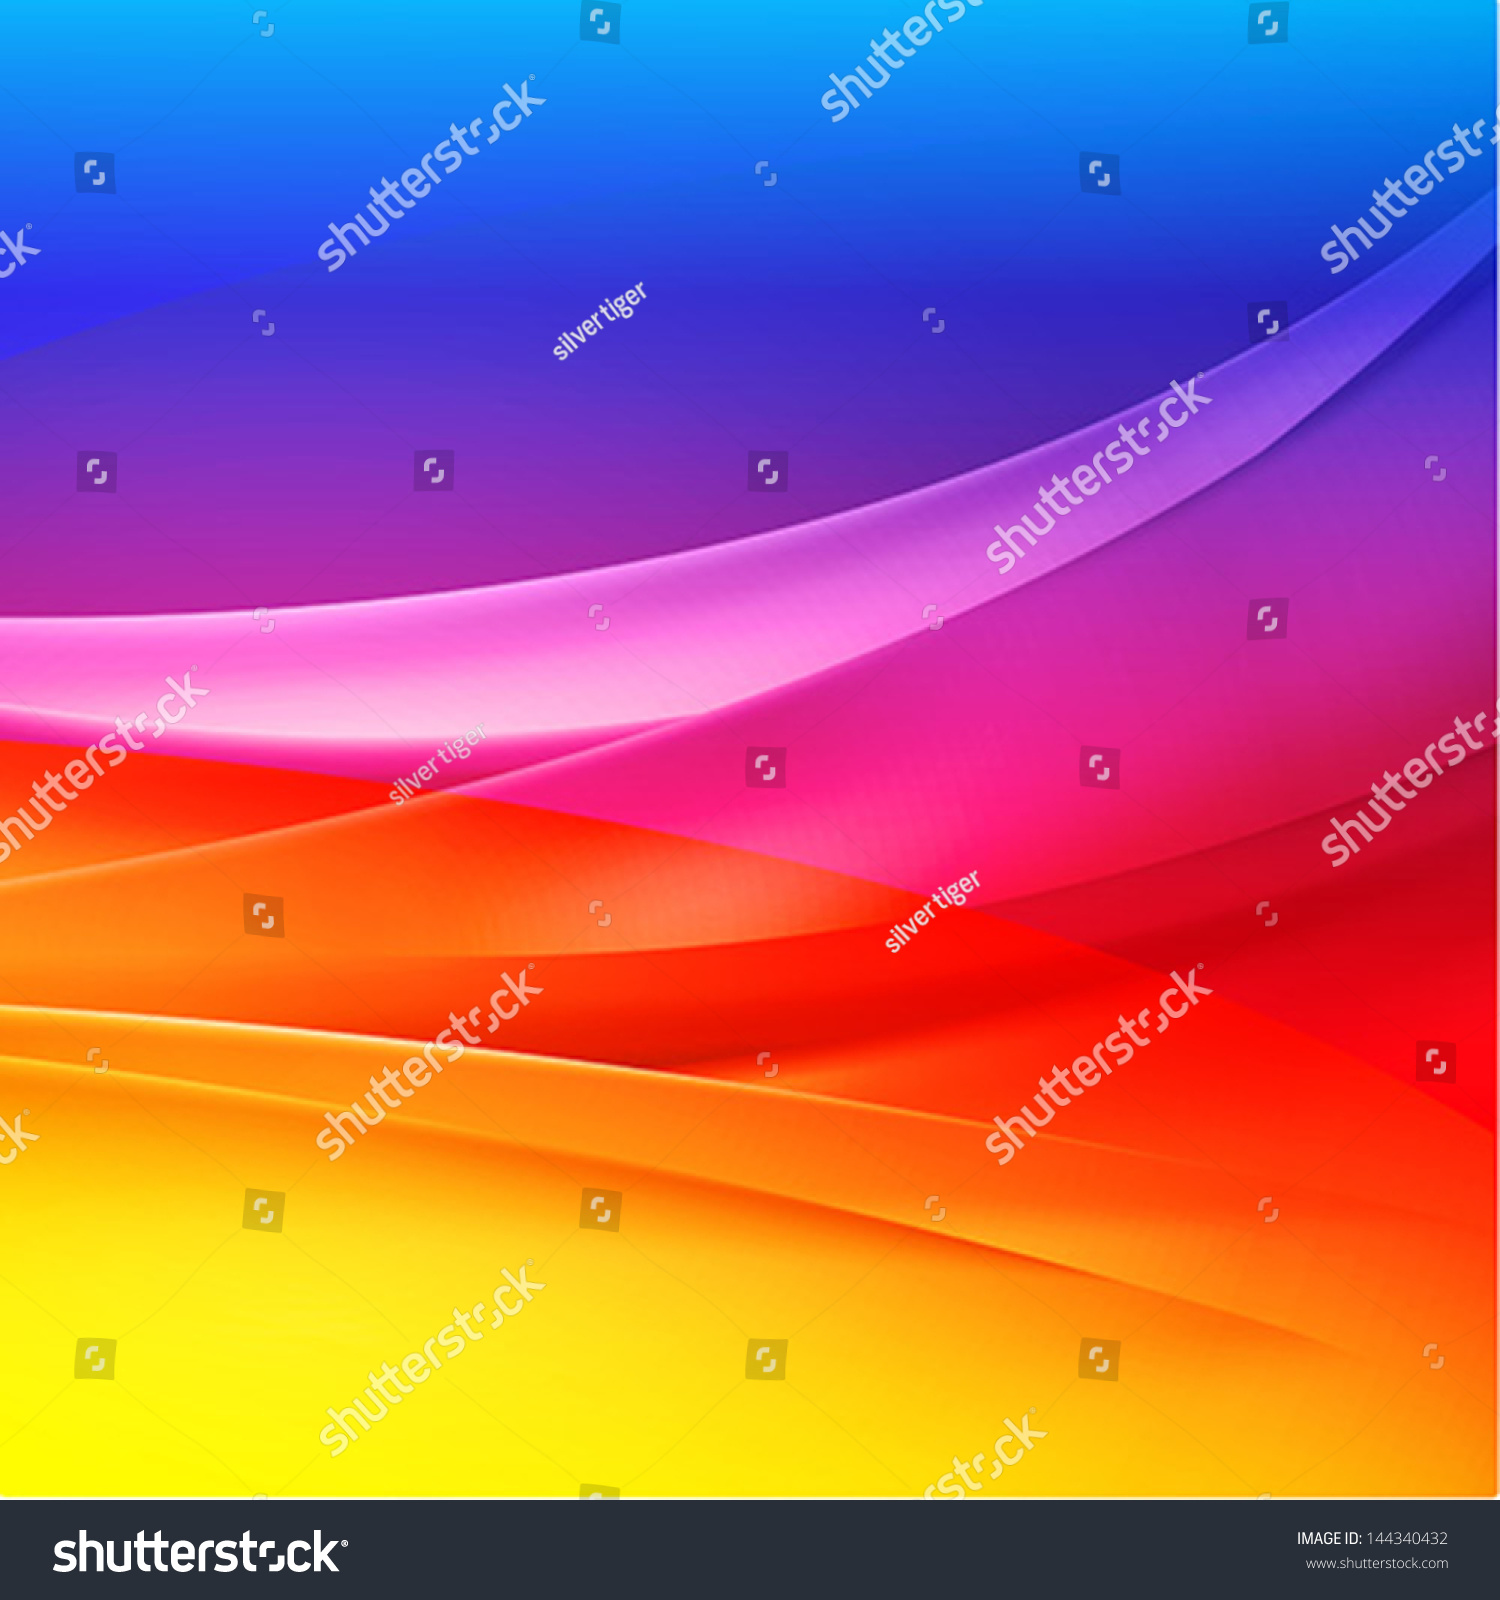 Colorful Backgrounds Abstract Vector Stock Vector